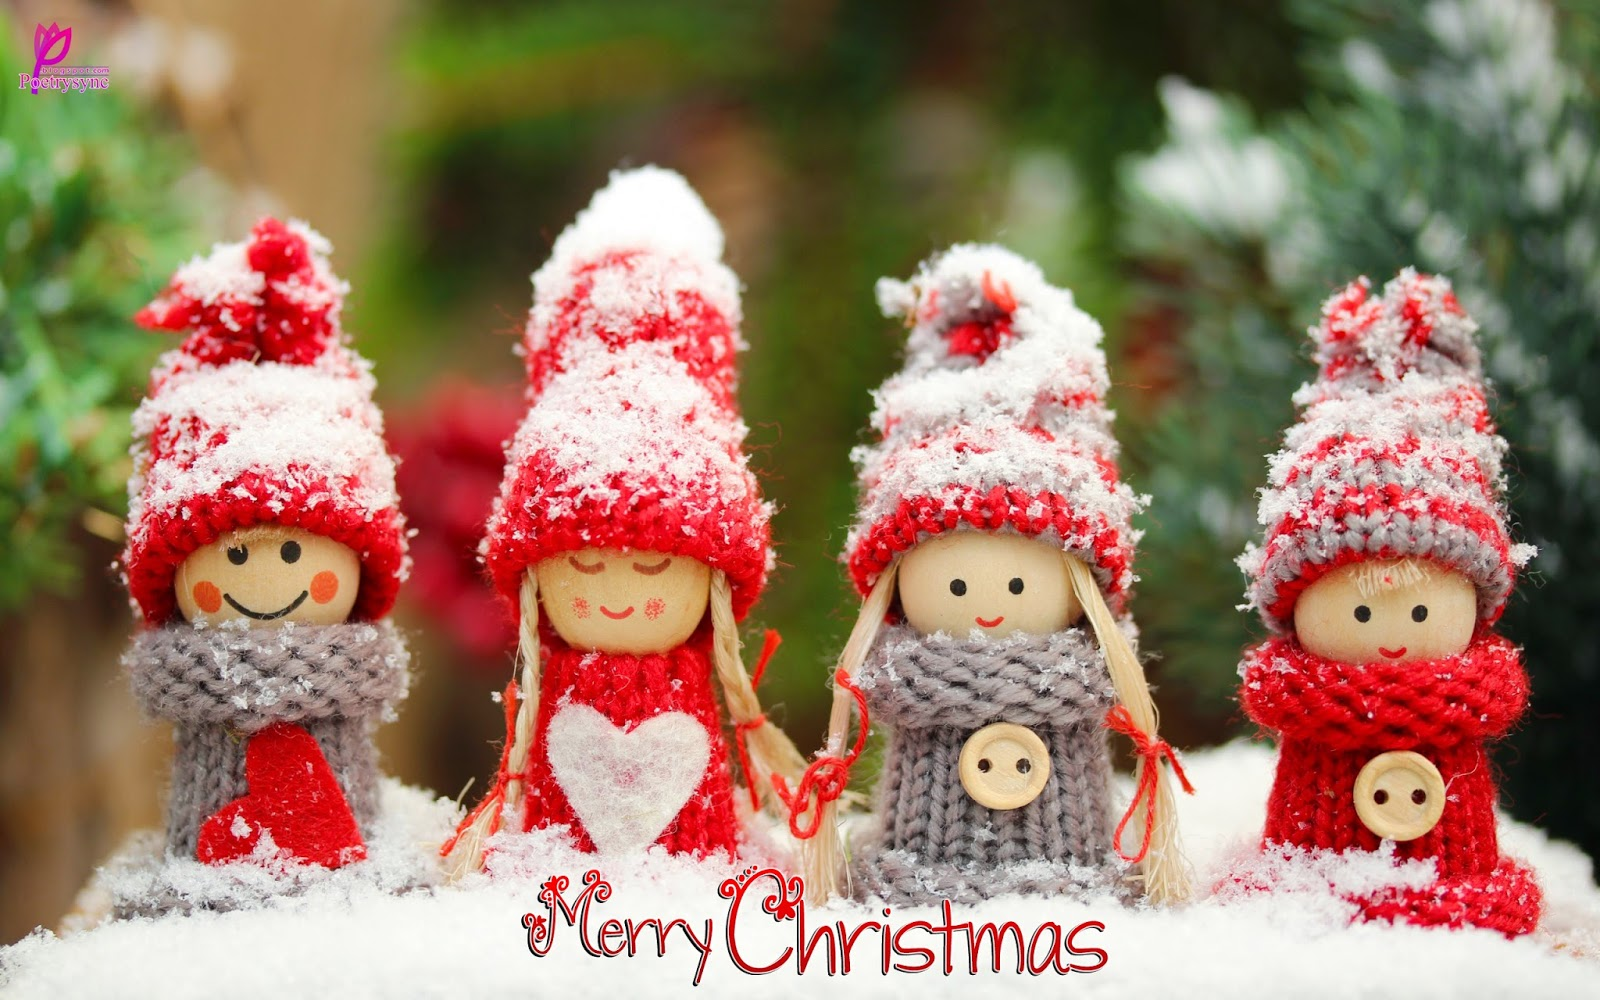 Merry Christmas Cute Wallpaper